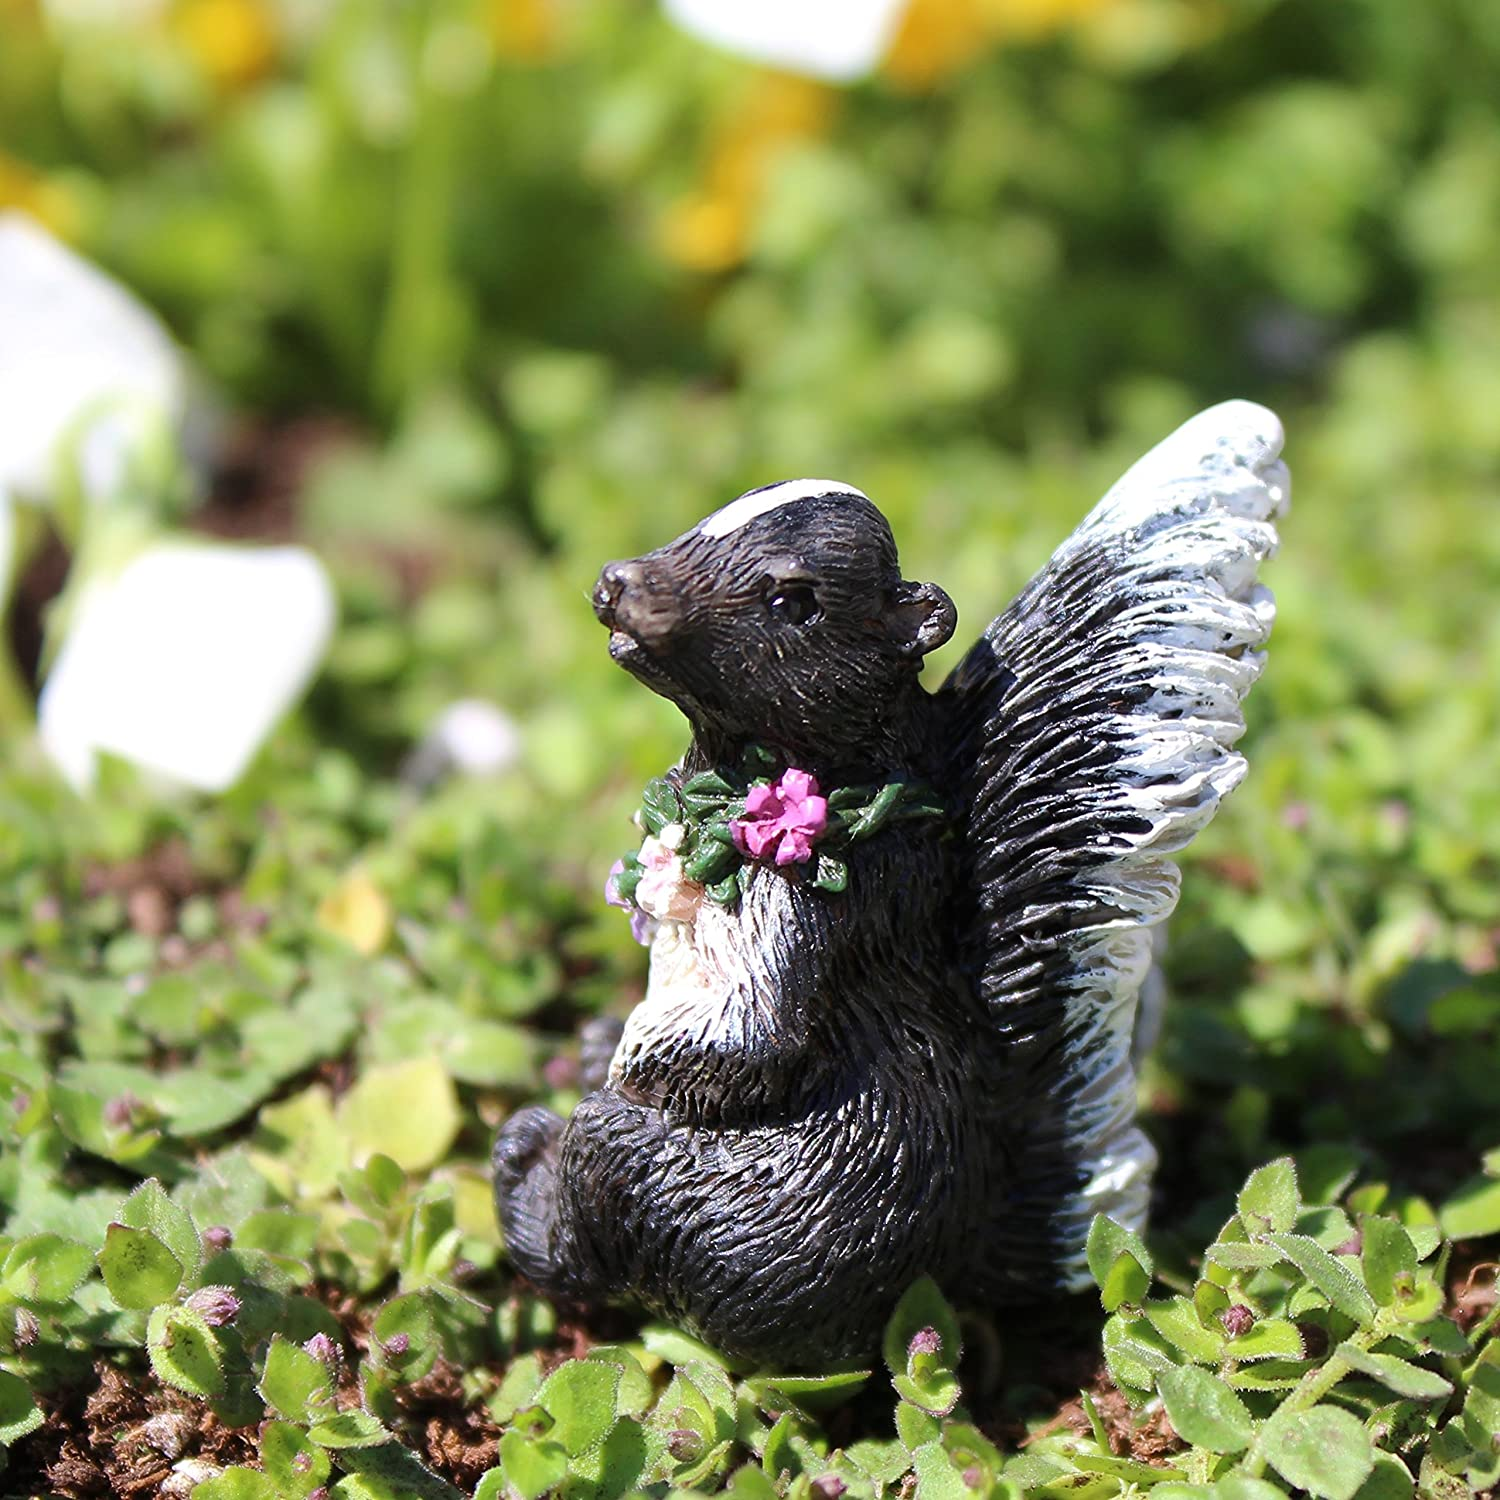 Miniature Fairy Garden Flower The Skunk